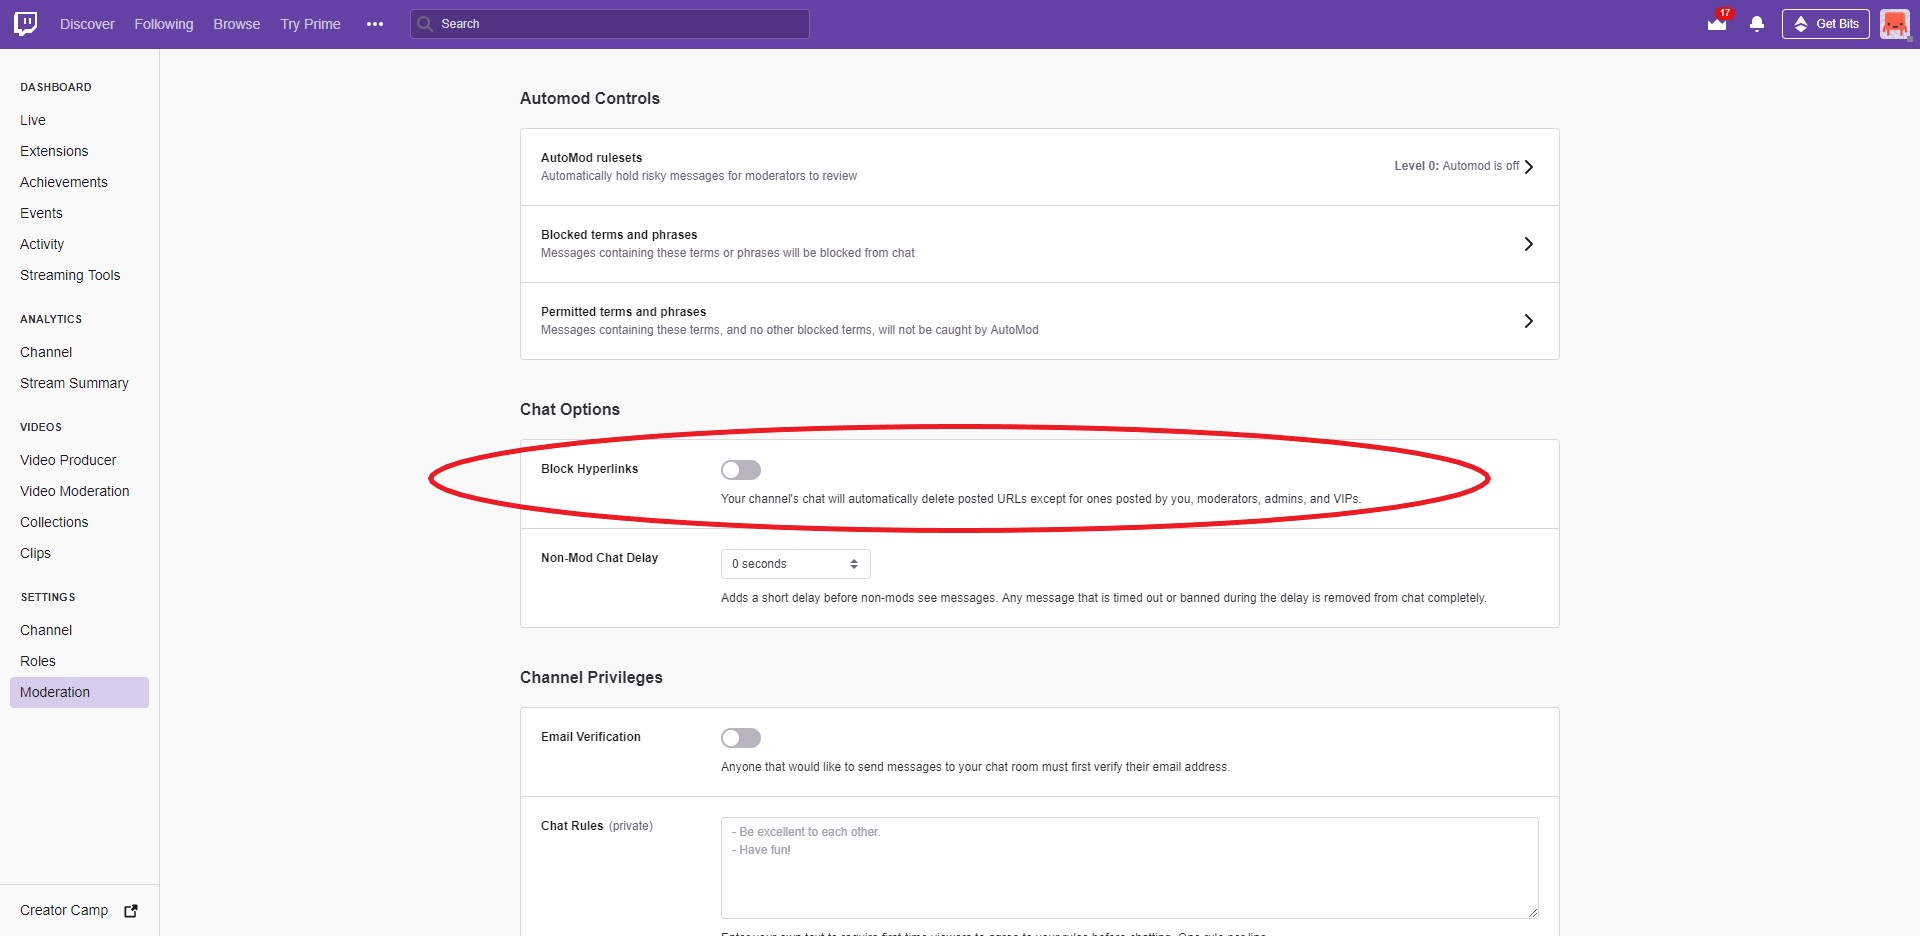 How to Setup Your Twitch Settings - RelativityRabbit